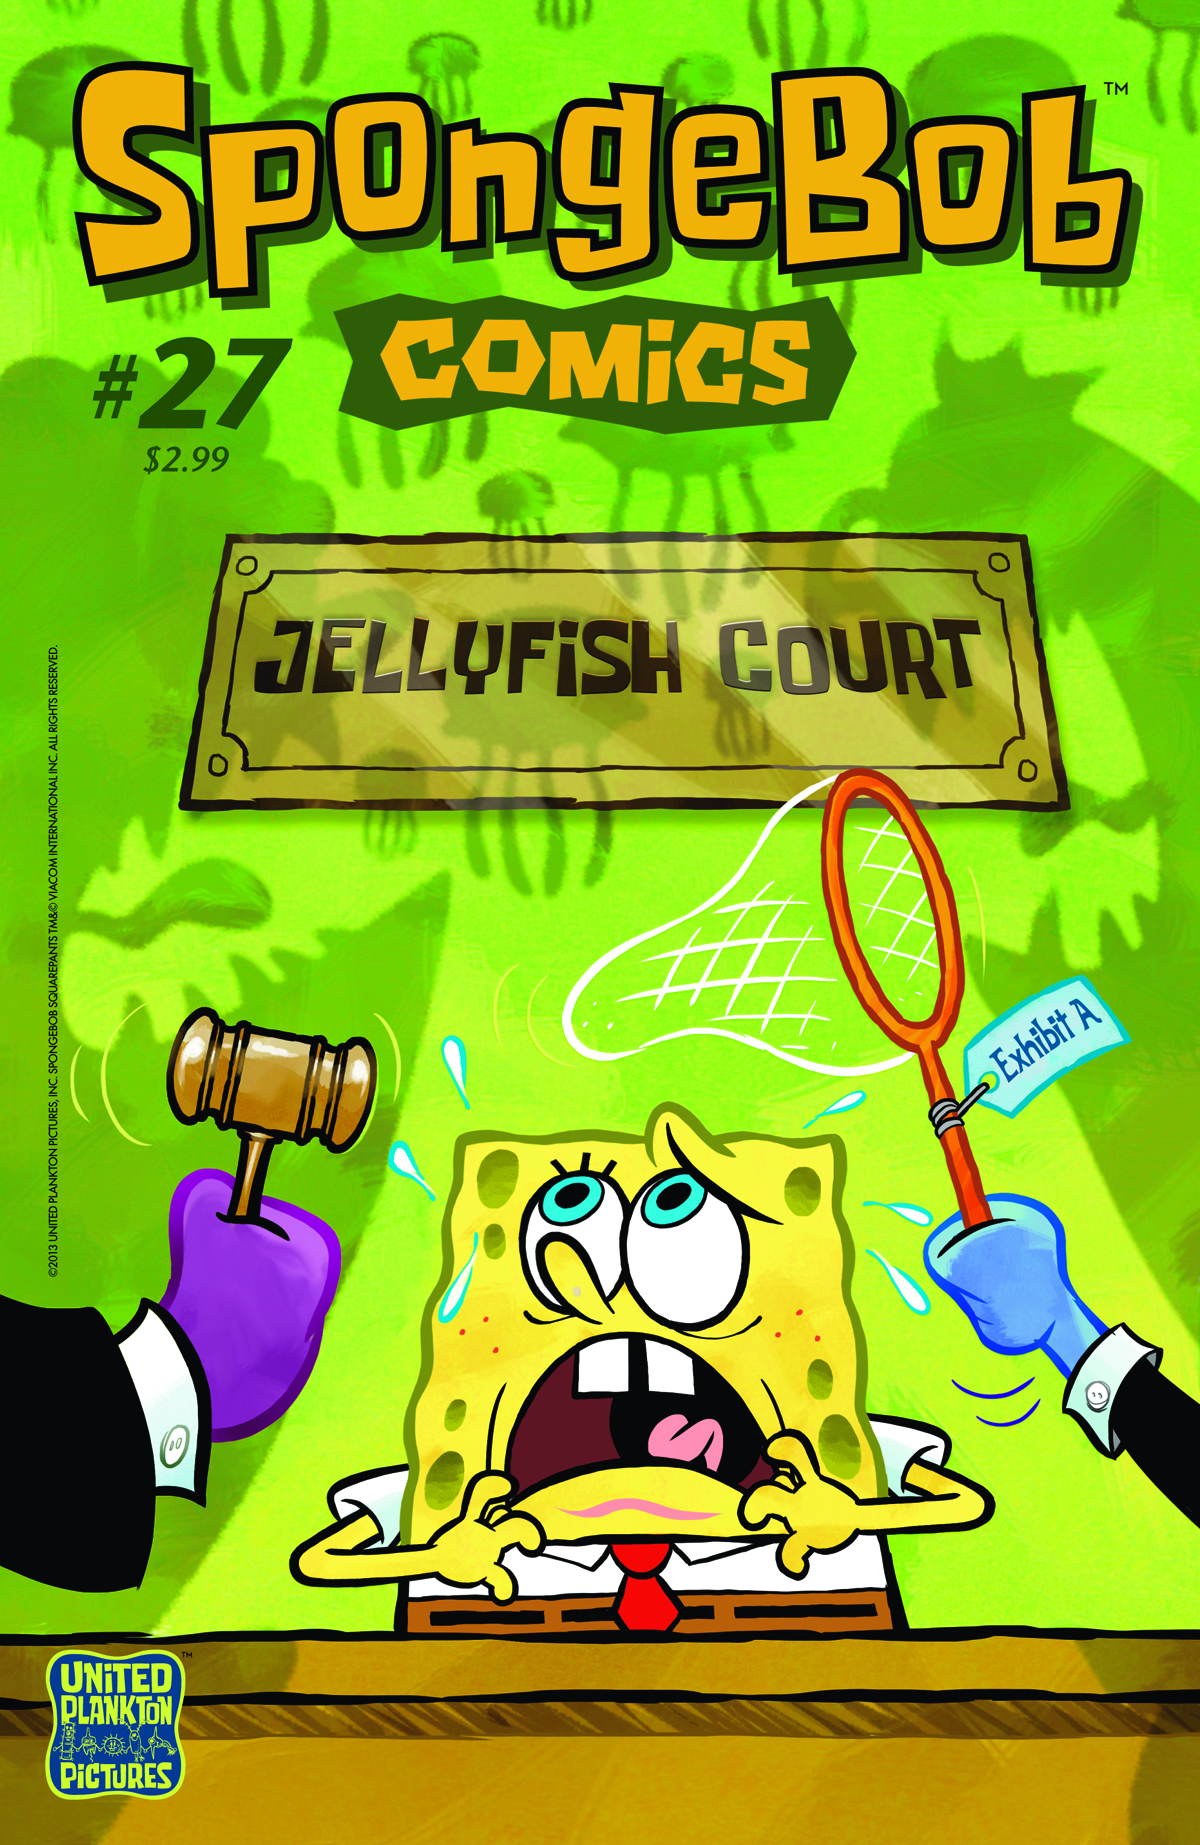 SPONGEBOB COMICS #27